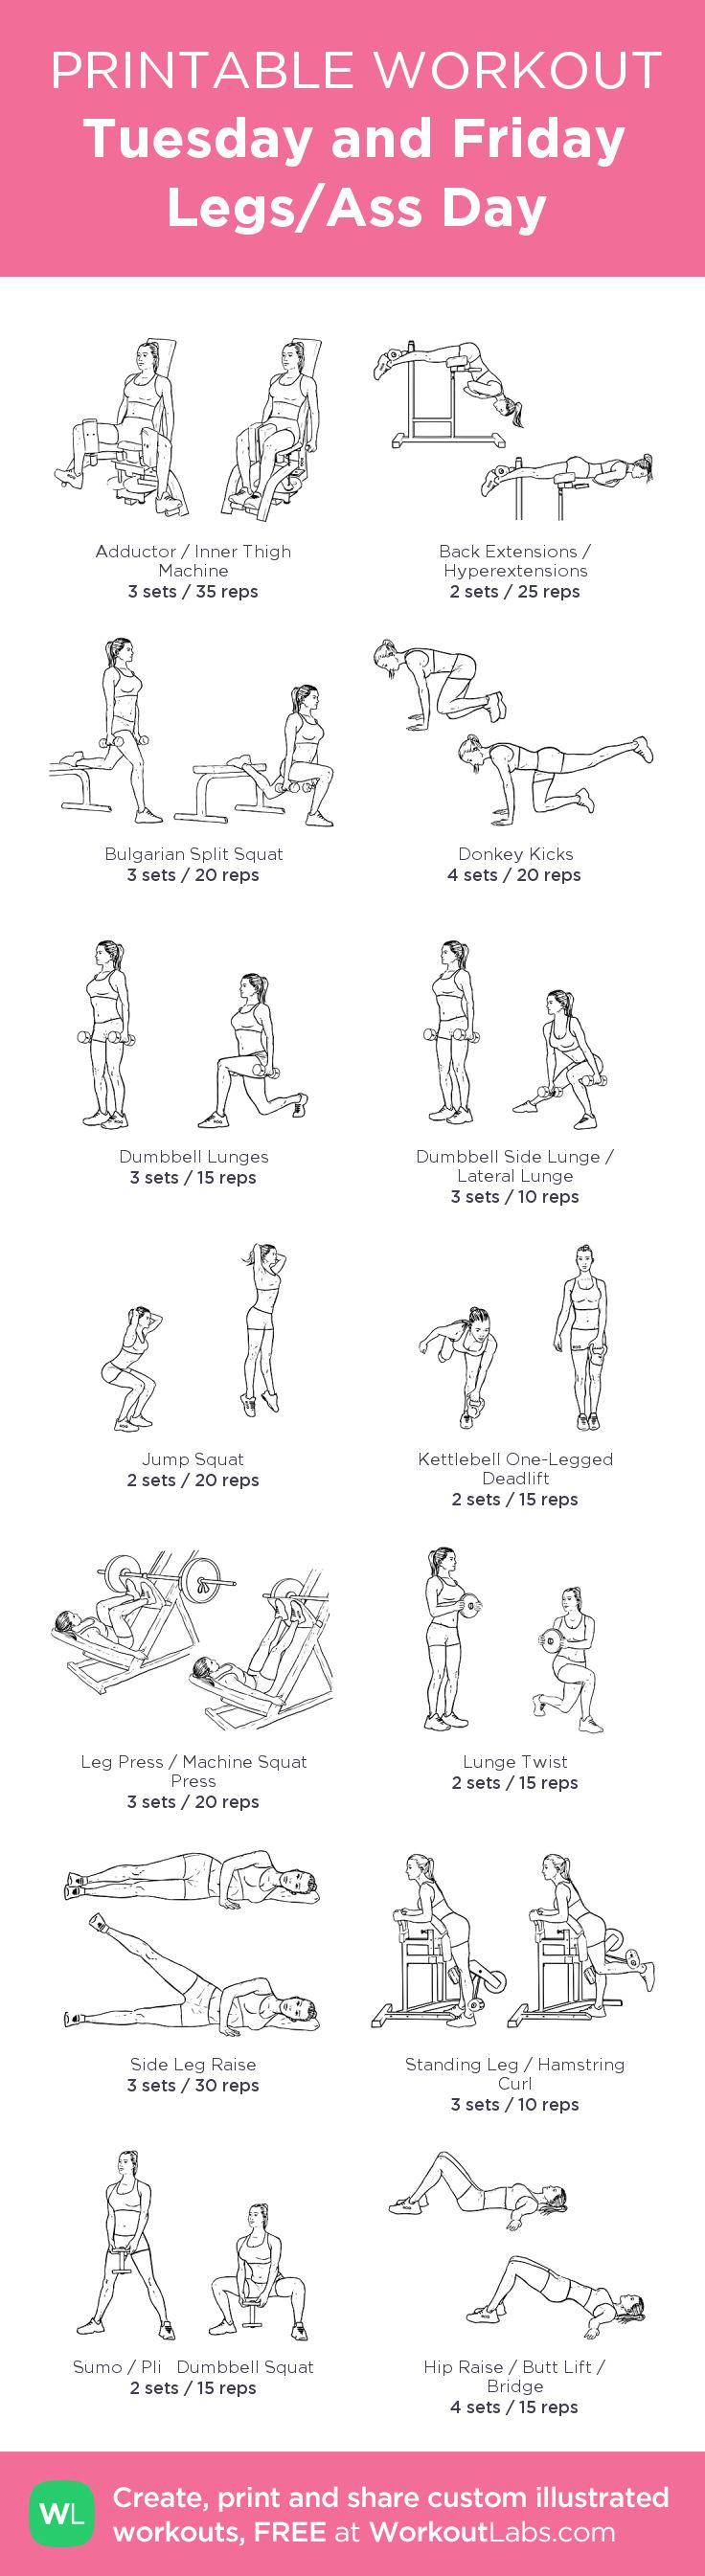 Tuesday and Friday Legs/Ass Day: my visual workout created at WorkoutLabs.com • Click through to customize and download as a FREE PDF! #customworkout